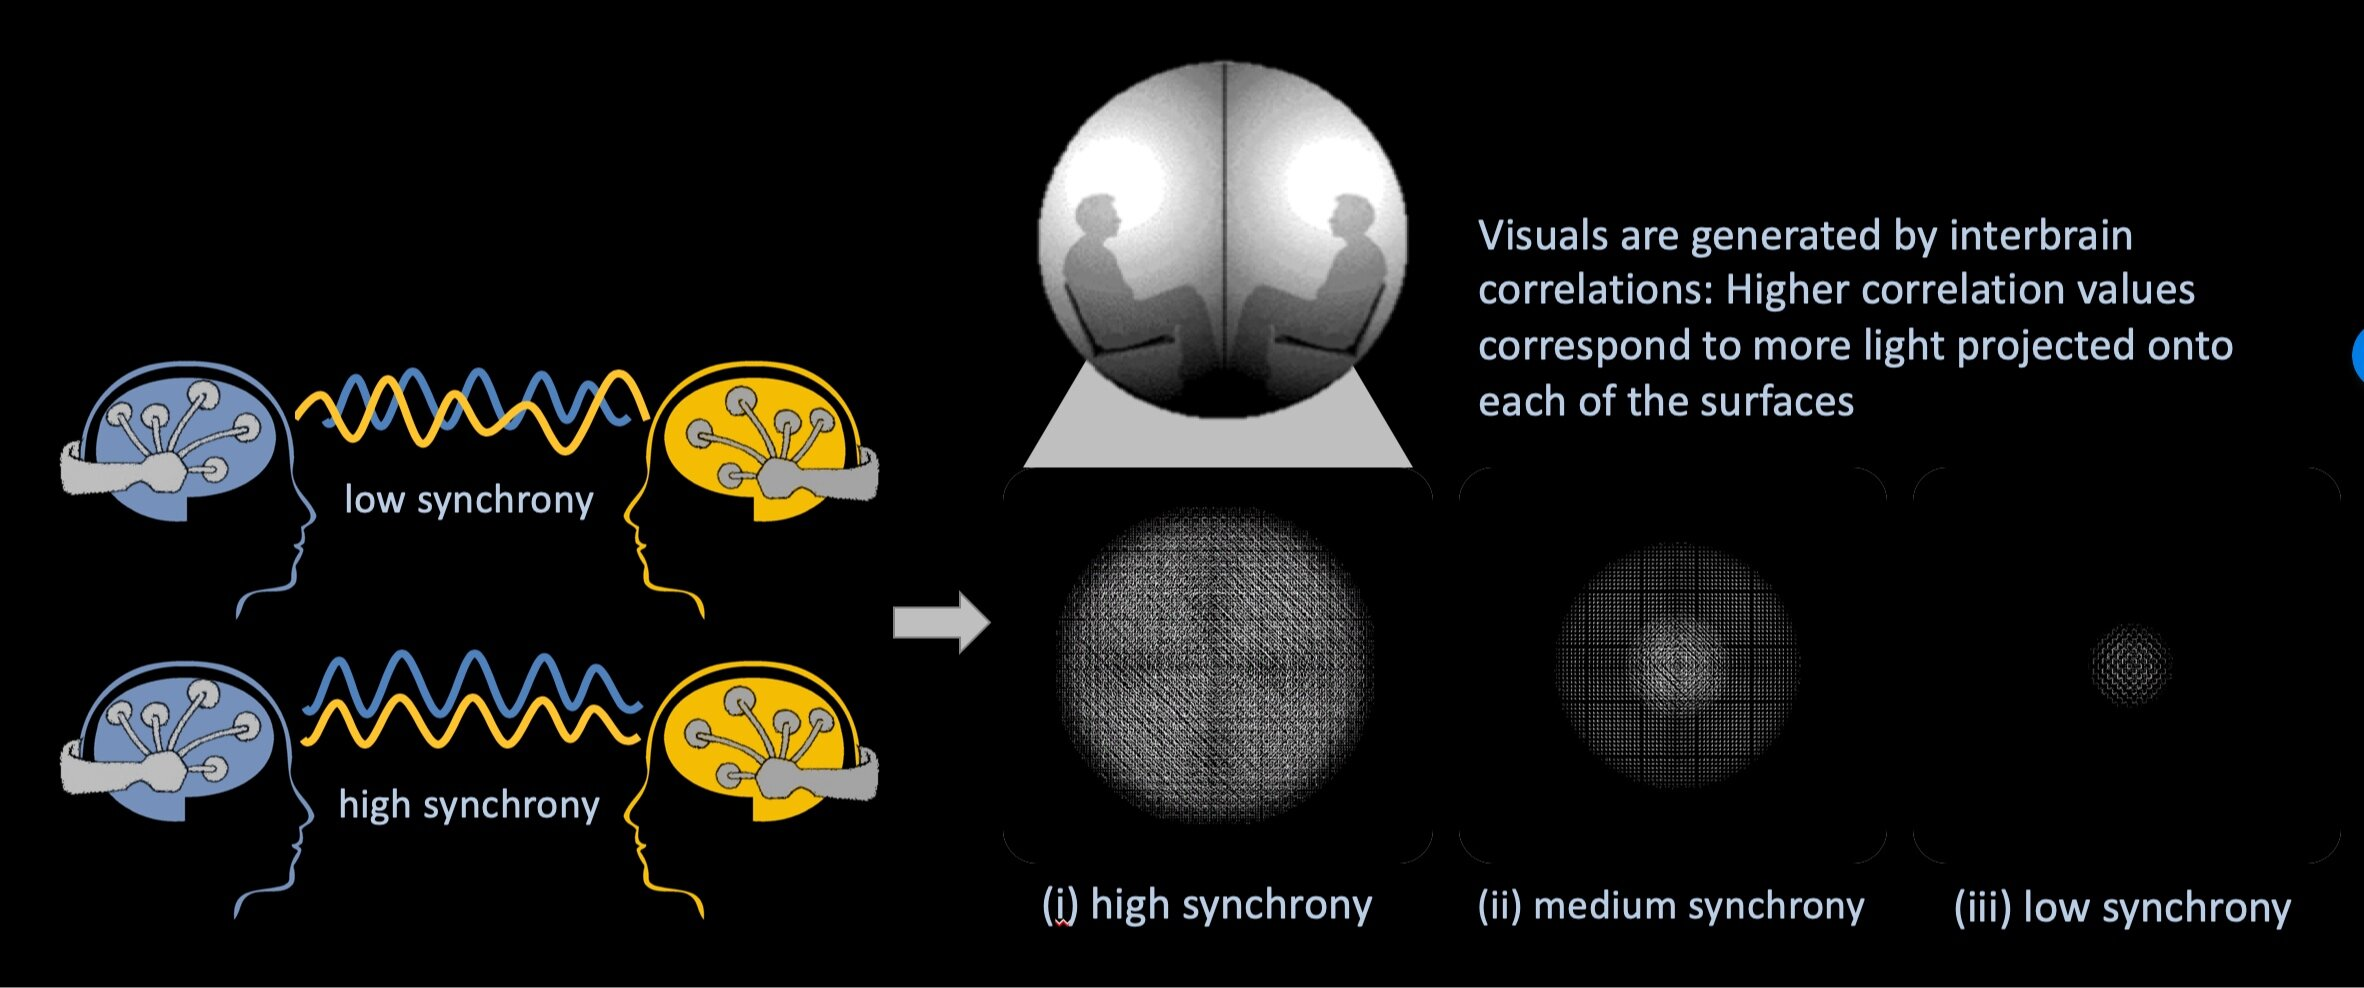 Visuals are generated by inter brain correlations: higher correlation values correspond to more light projected onto the sphere.